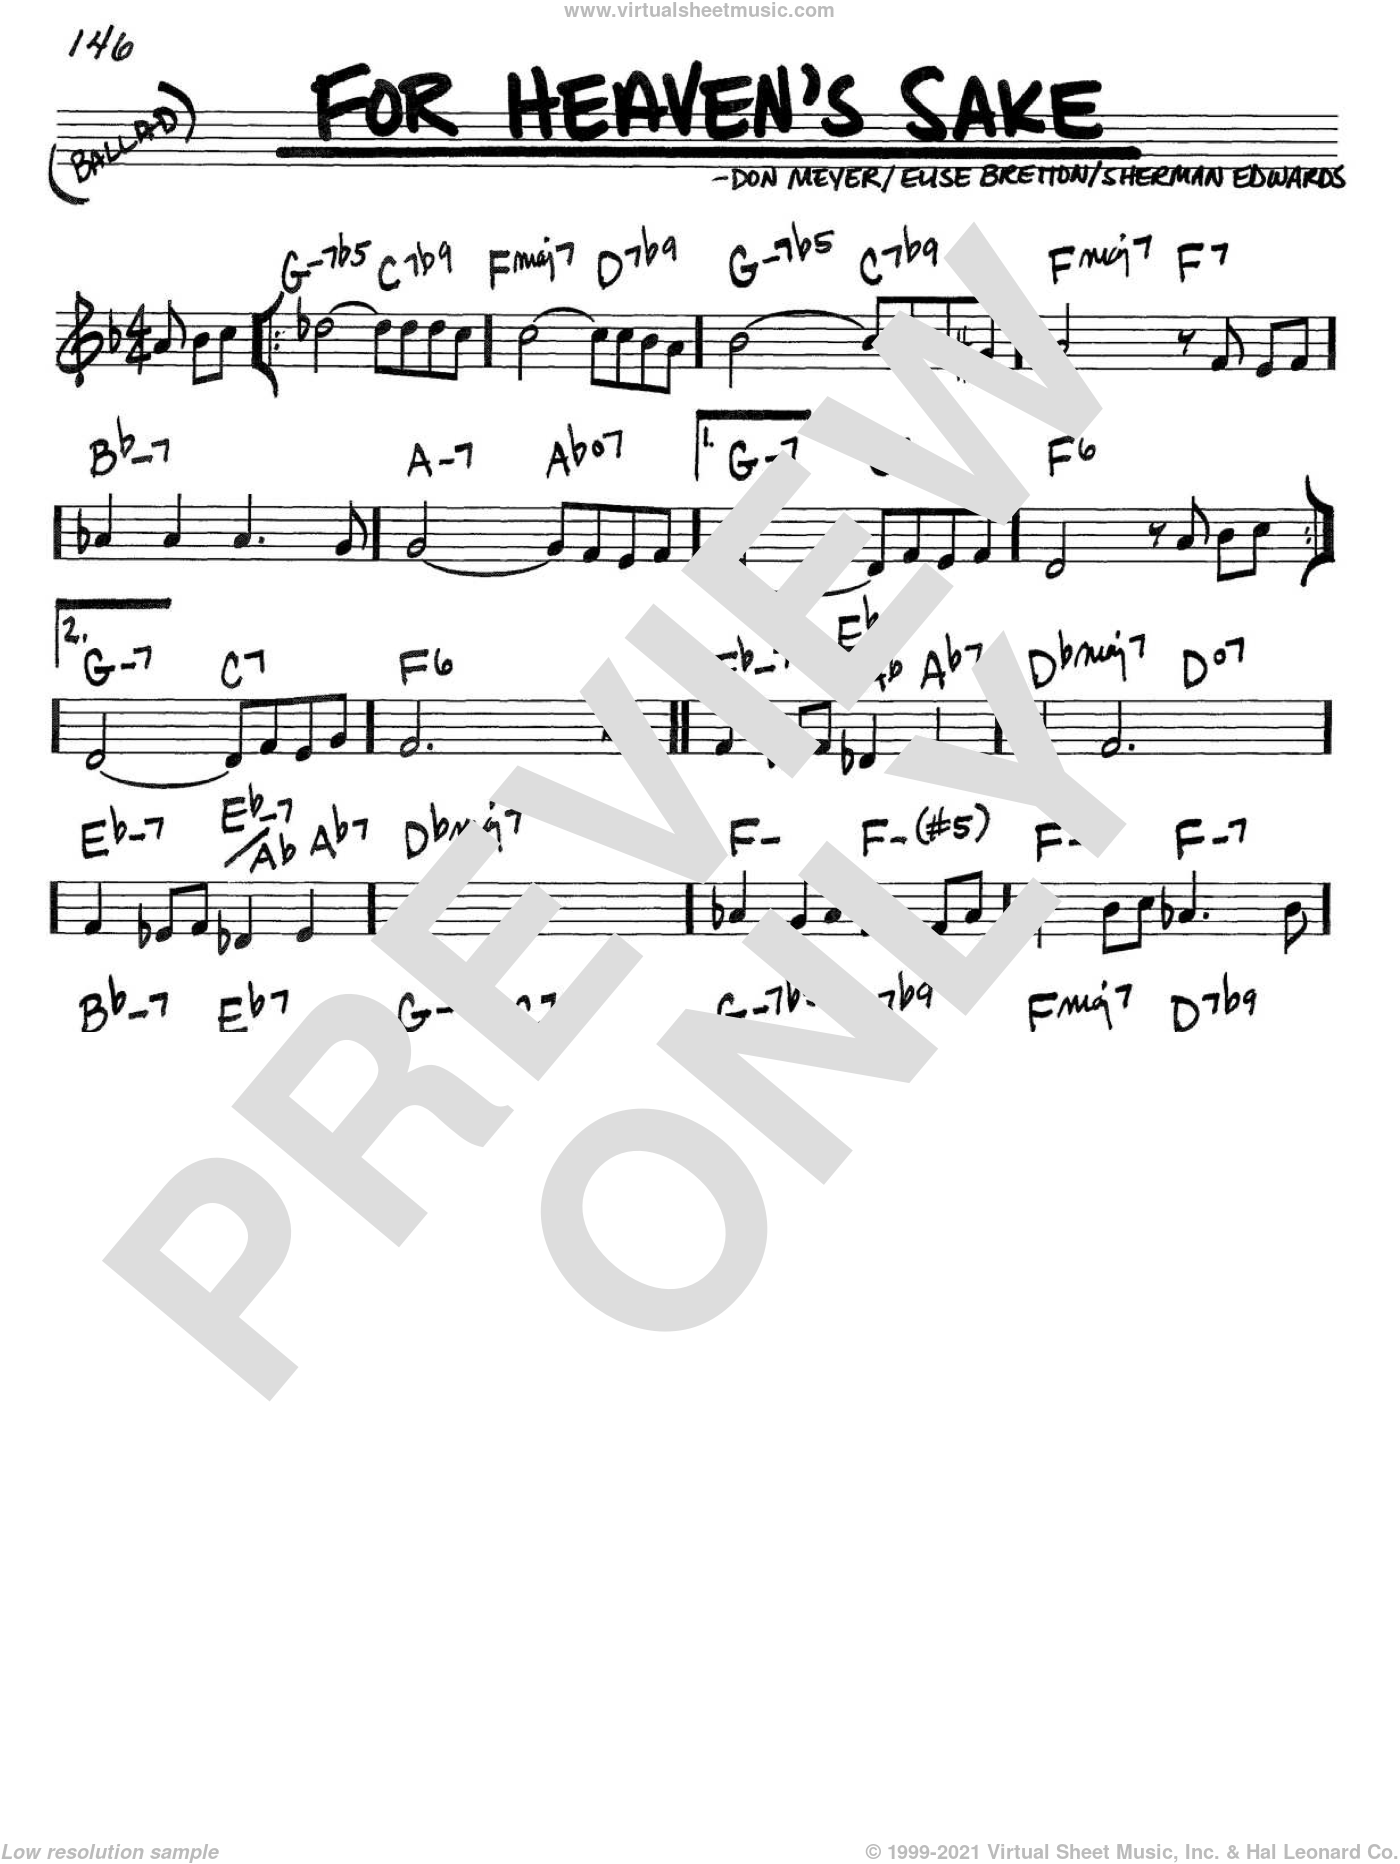 For Heaven's Sake sheet music for voice and other instruments (in C) by Bill Evans, Don Meyer, Elise Bretton and Sherman Edwards, intermediate skill level